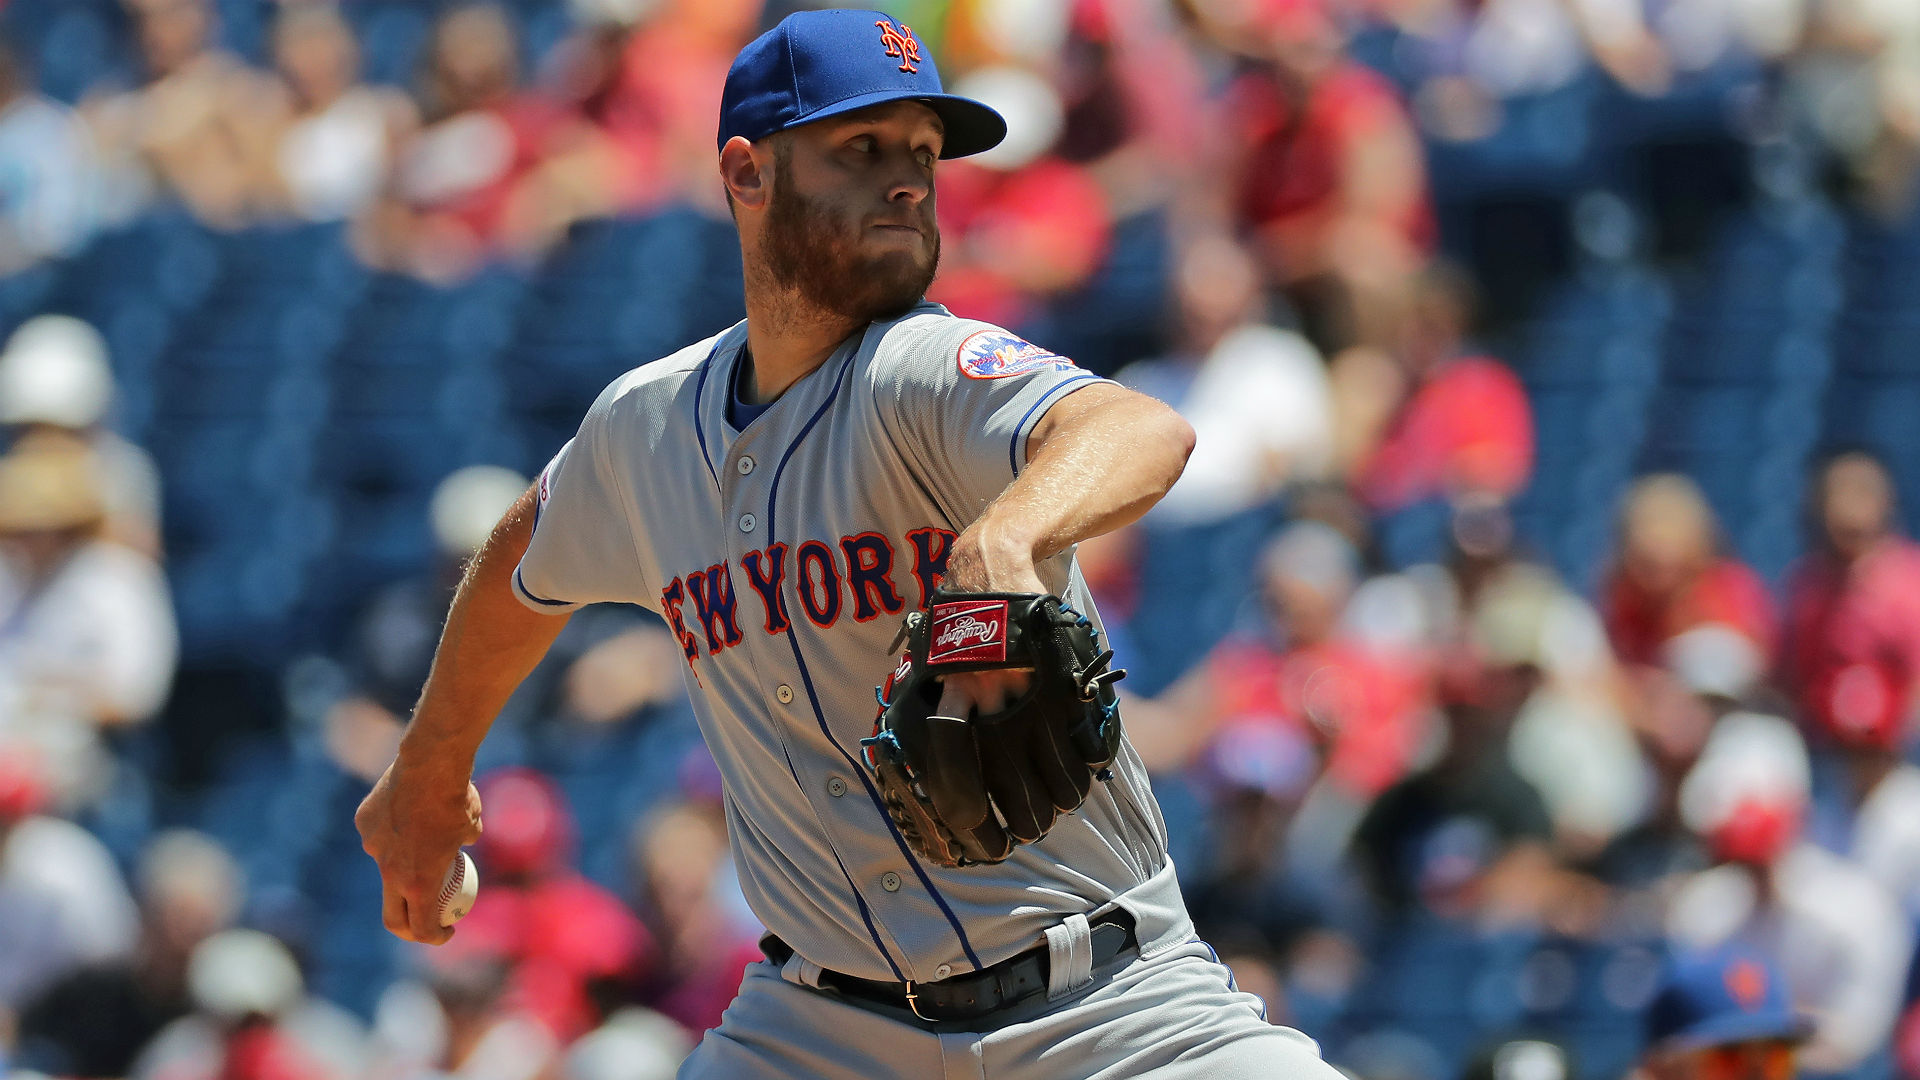 Wheeler is expected to throw a bullpen session sometime early this week, according to the New York Post.